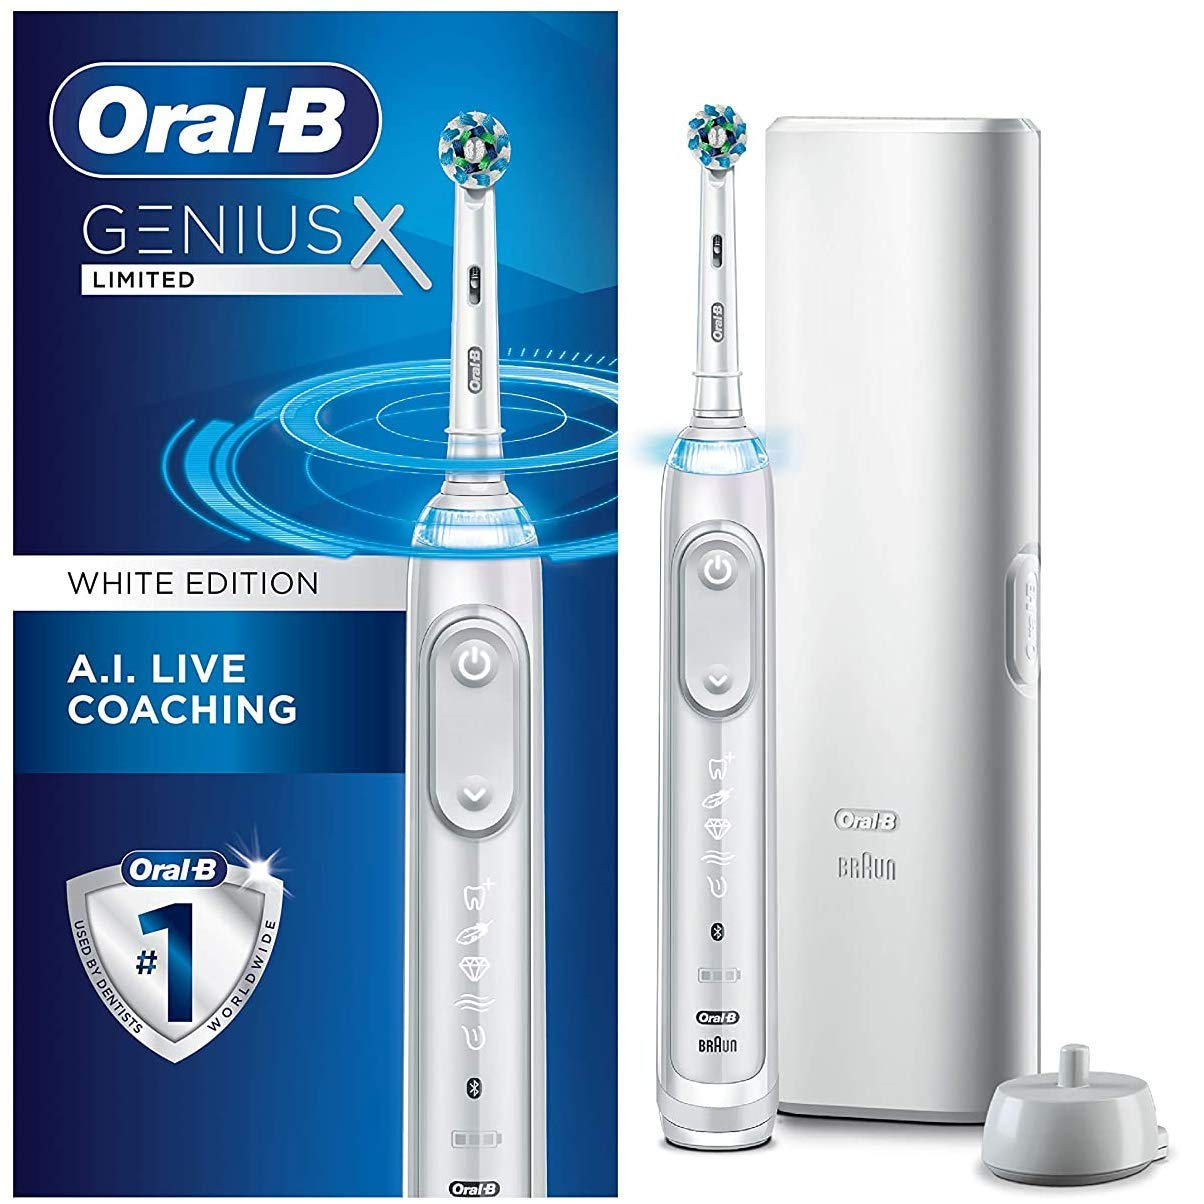 Cyber Monday Is the Best Time to Buy an Electric Toothbrush